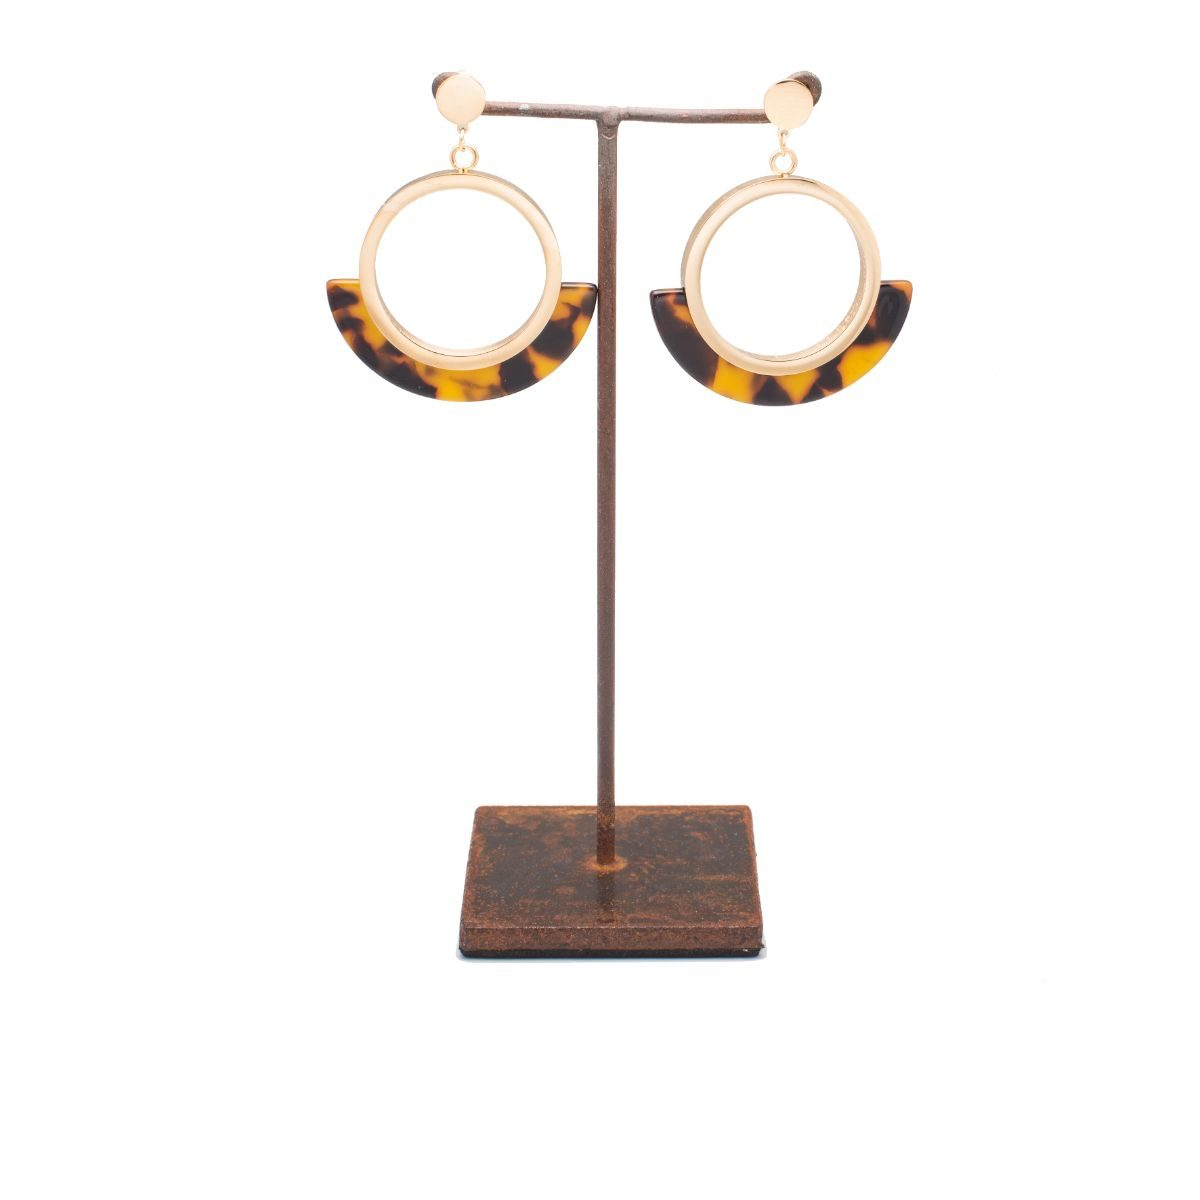 Anemone Gold-plated metal circle-shaped earring with brown-tone resin piece in the lower half of the circle